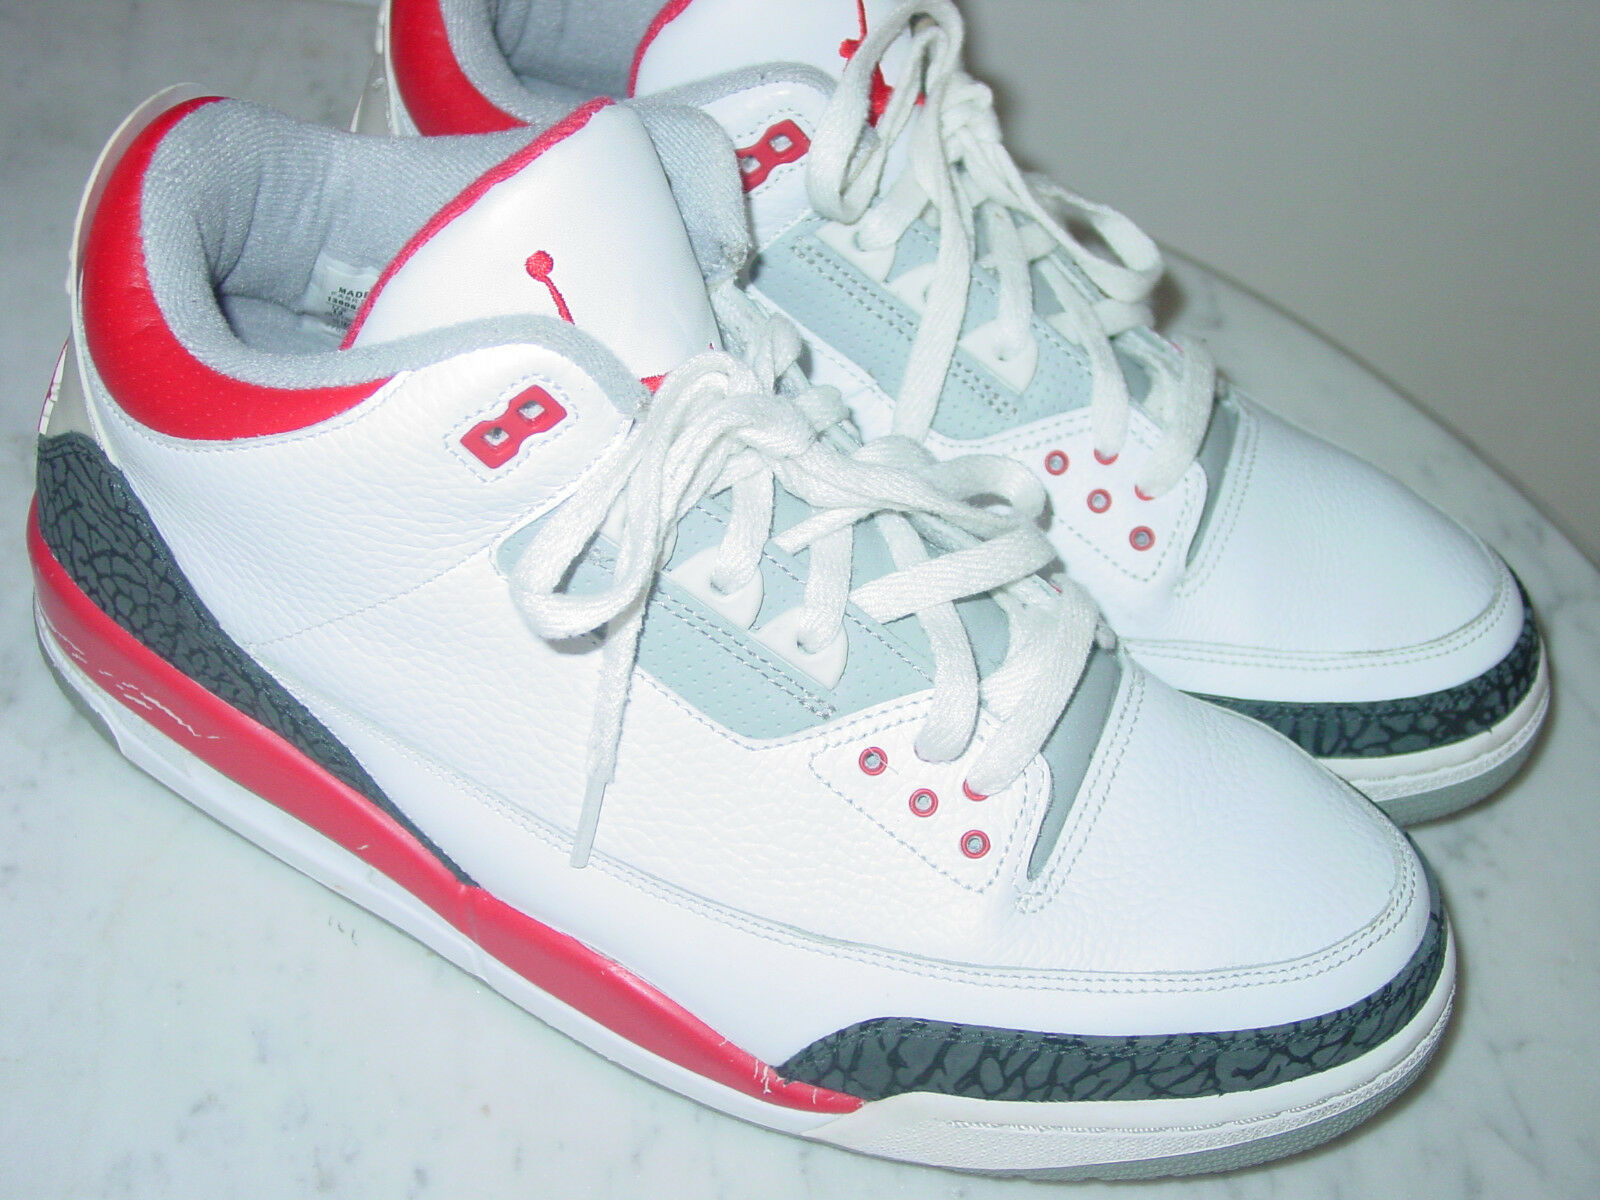 2006 Nike Air Jordan Retro 3 White Fire Red Cement shoes Size 13 Sold As Is